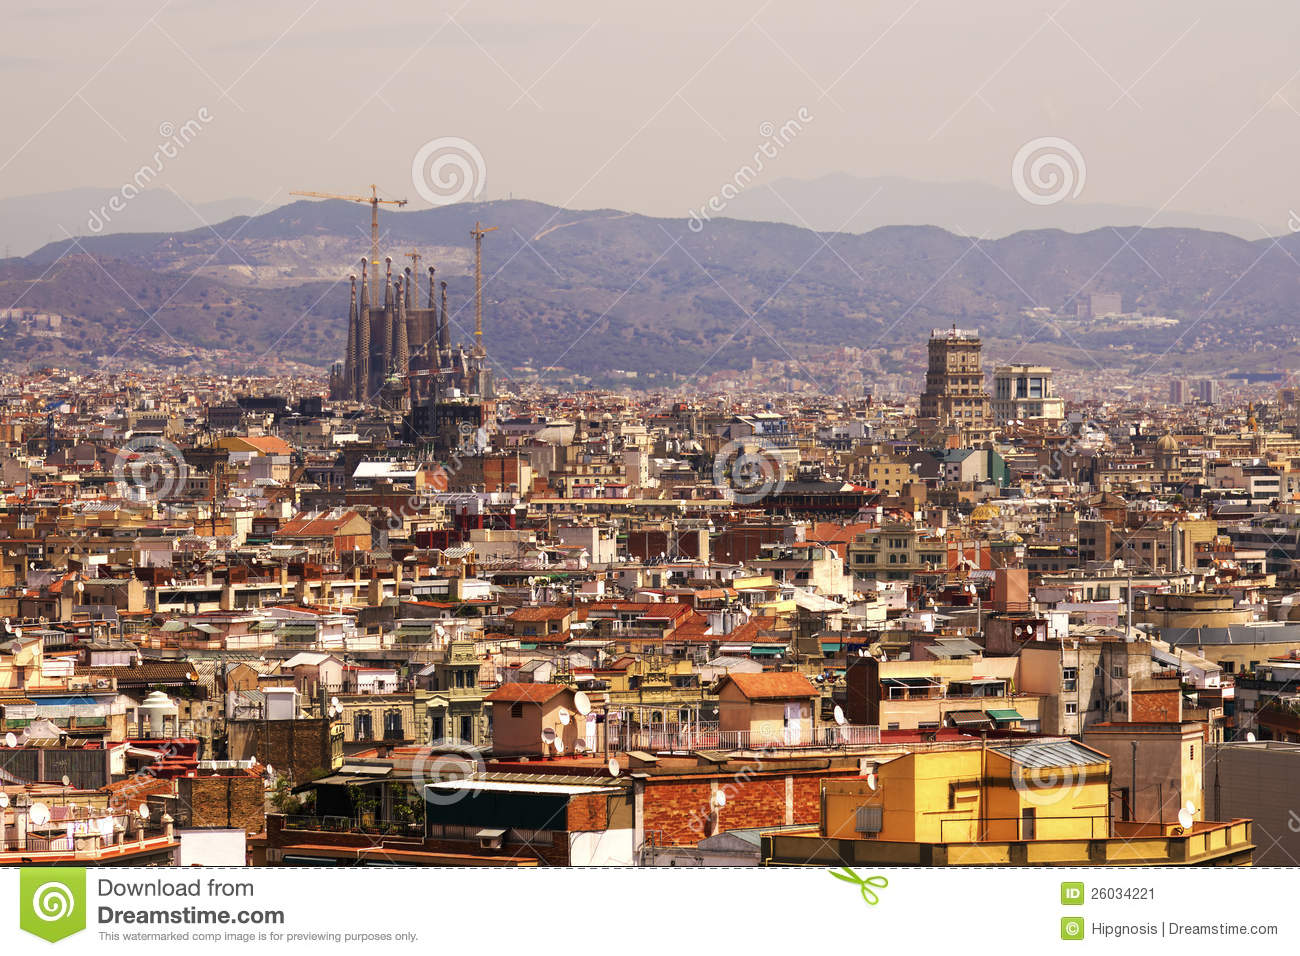 Aerial View Of Barcelona City Stock Image - Image: 26034221